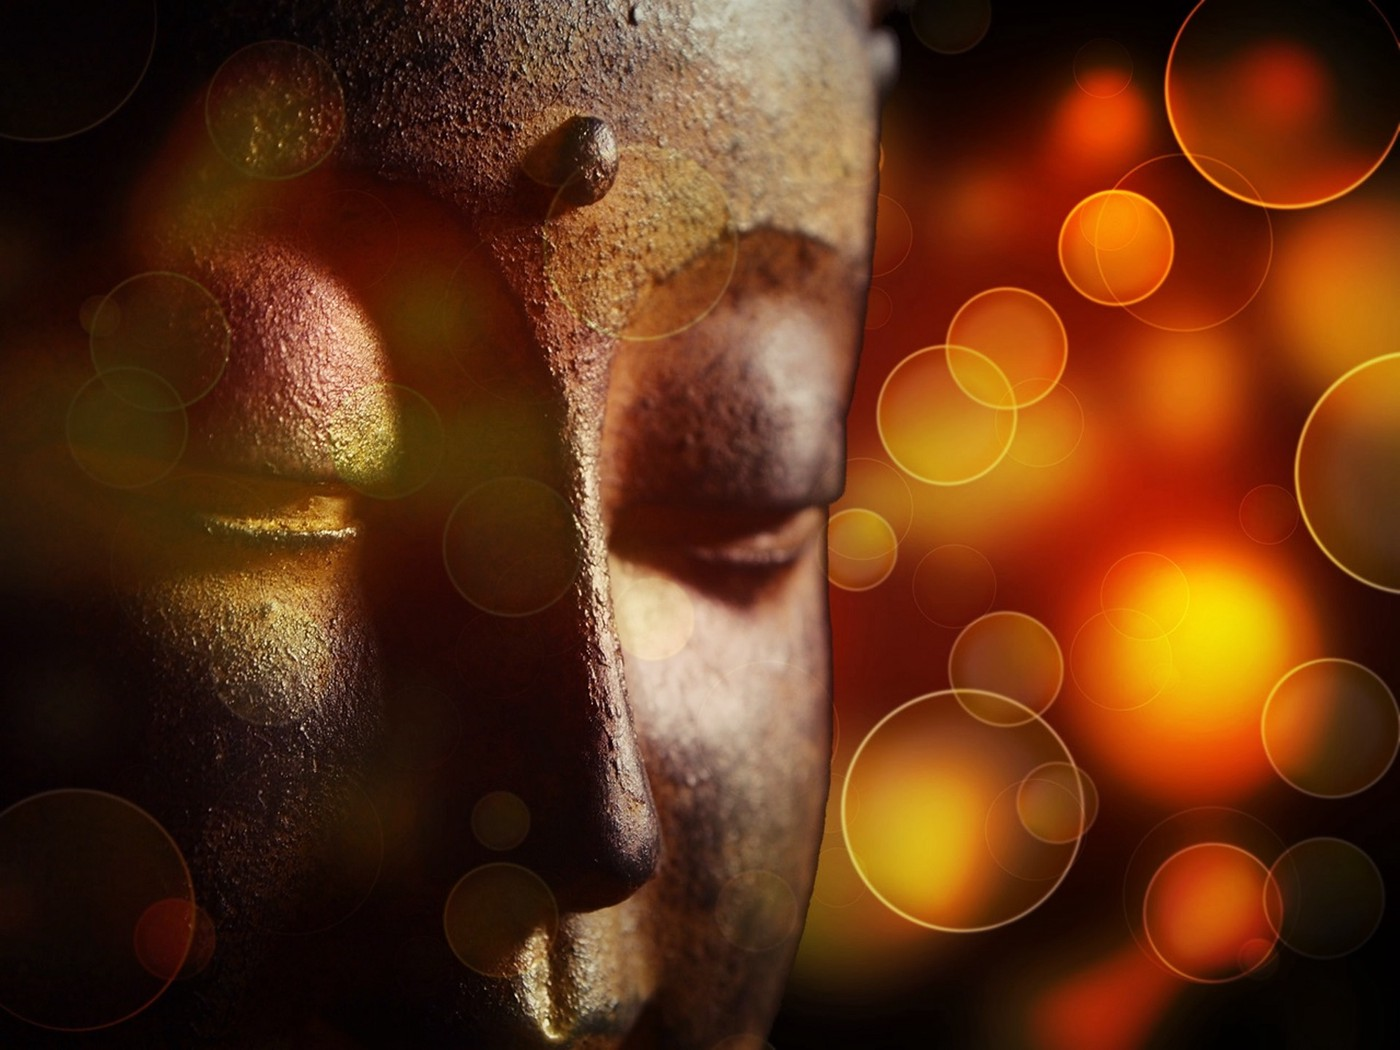 face of a sculpture of the Buddha meditating